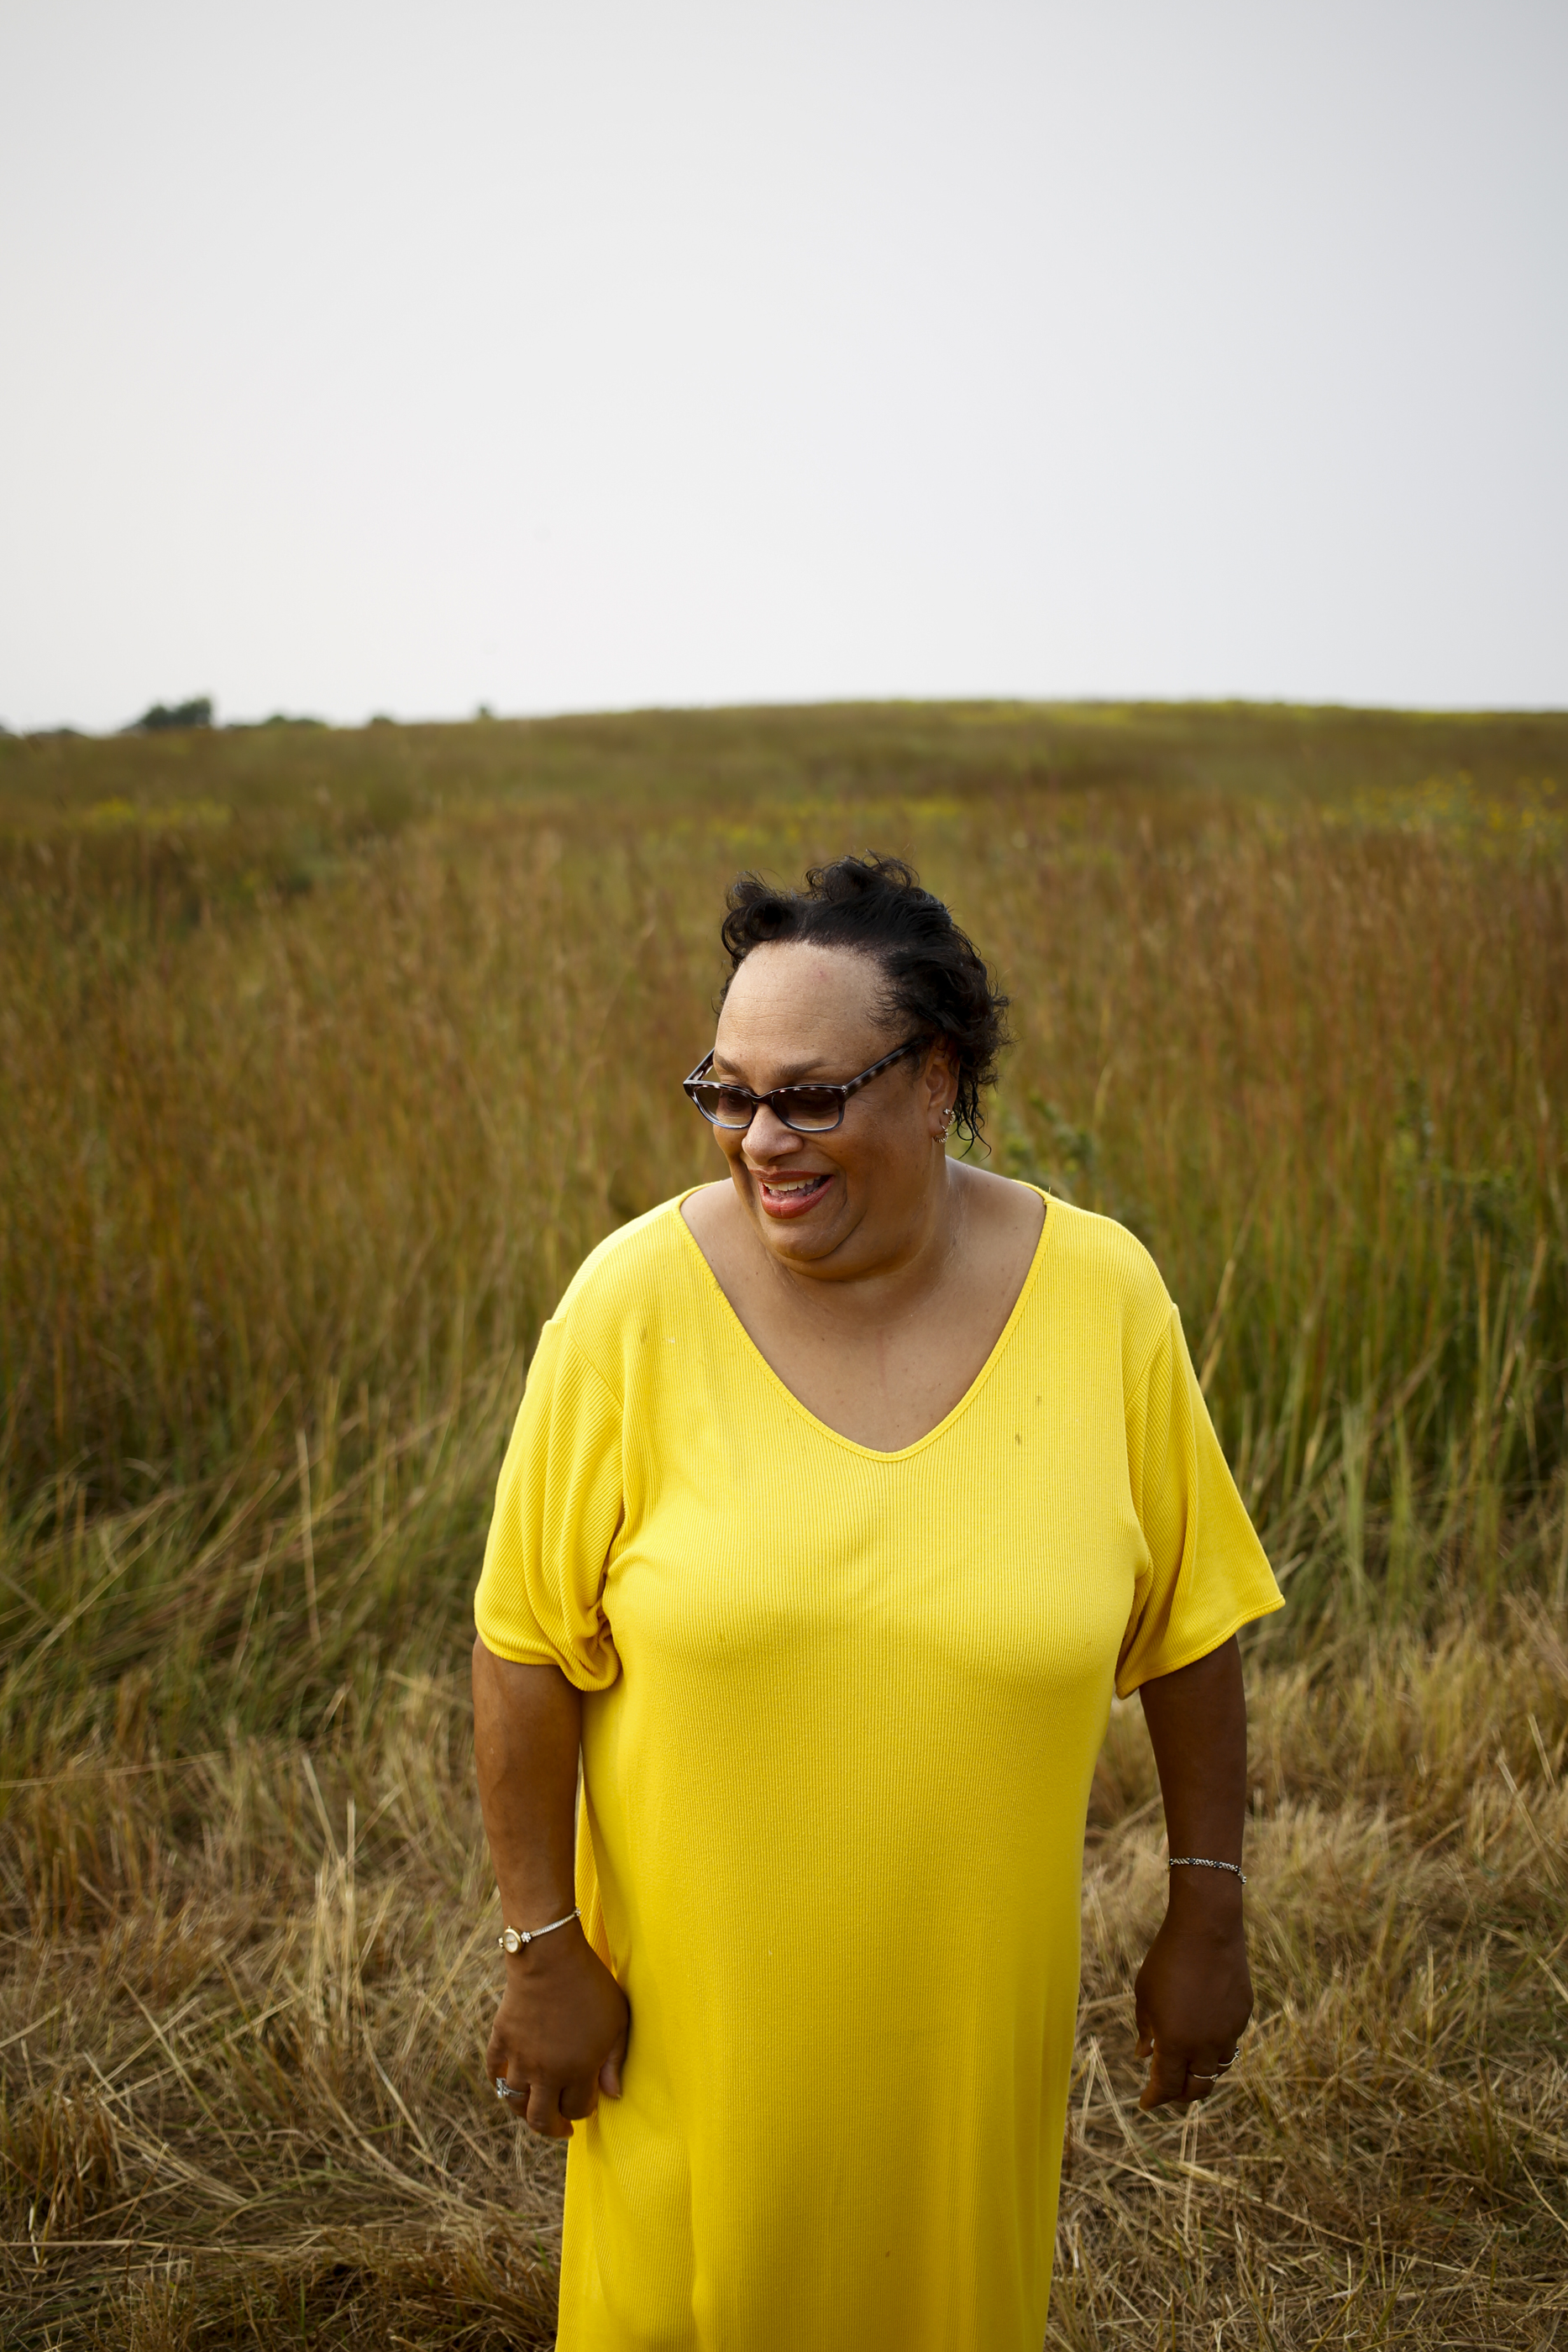 Well-known jazz and blues singer and Lincoln native Annette Murrell stands for a portrait shortly after performing at the Prairie Jazz Festival Saturday August 29, 2015 at Pioneer Park Nature Center outside of Lincoln, Nebraska. All proceeds gathered are to be donated to the Pioneer Park Nature Center to preserve and bring awareness to wilderness habitats across Nebraska and the nation.